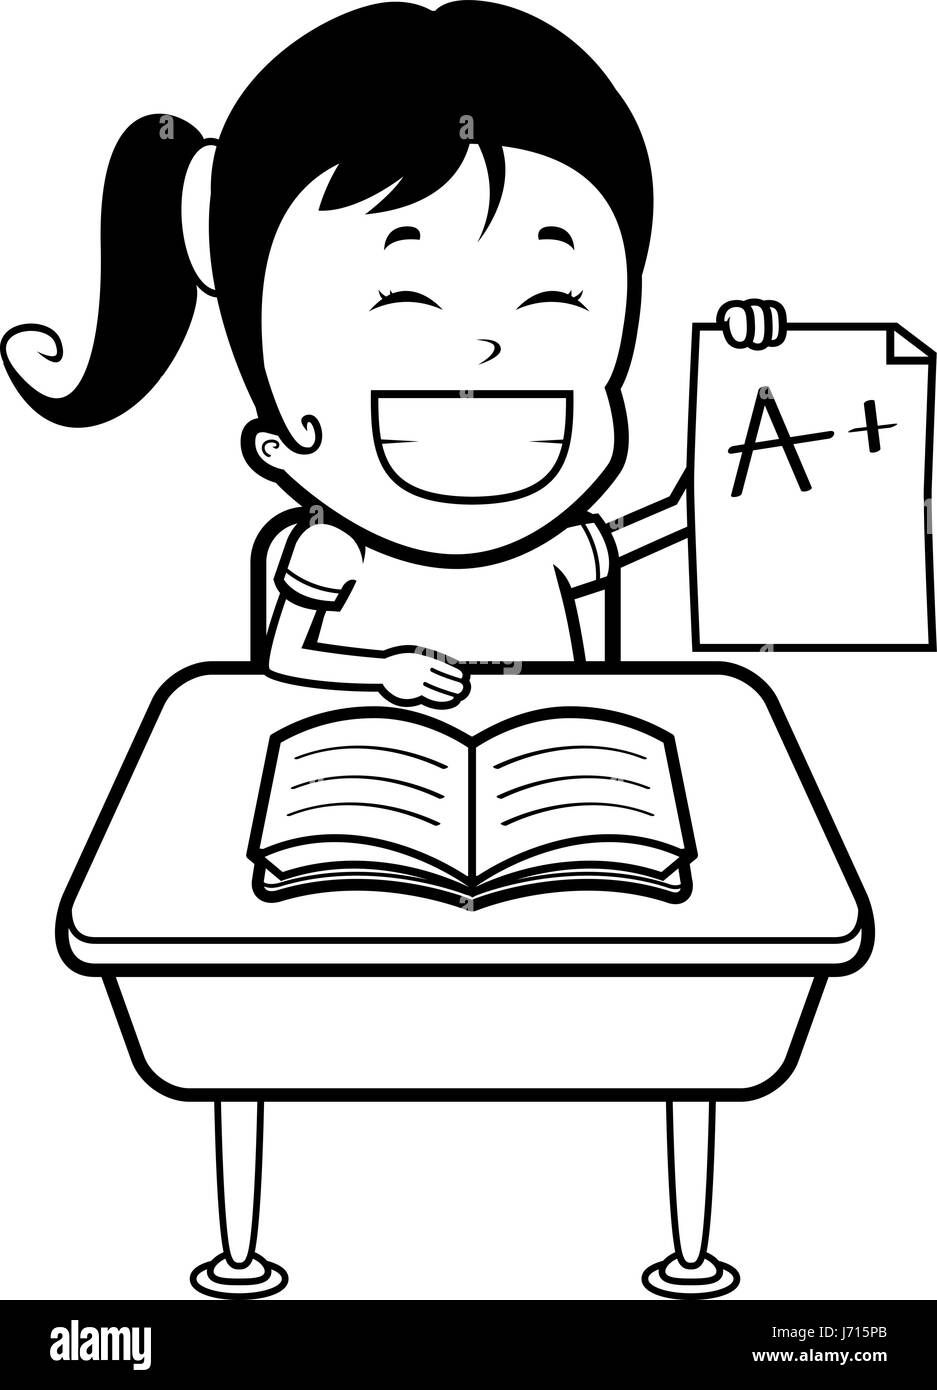 medium resolution of a happy cartoon girl student with good grades